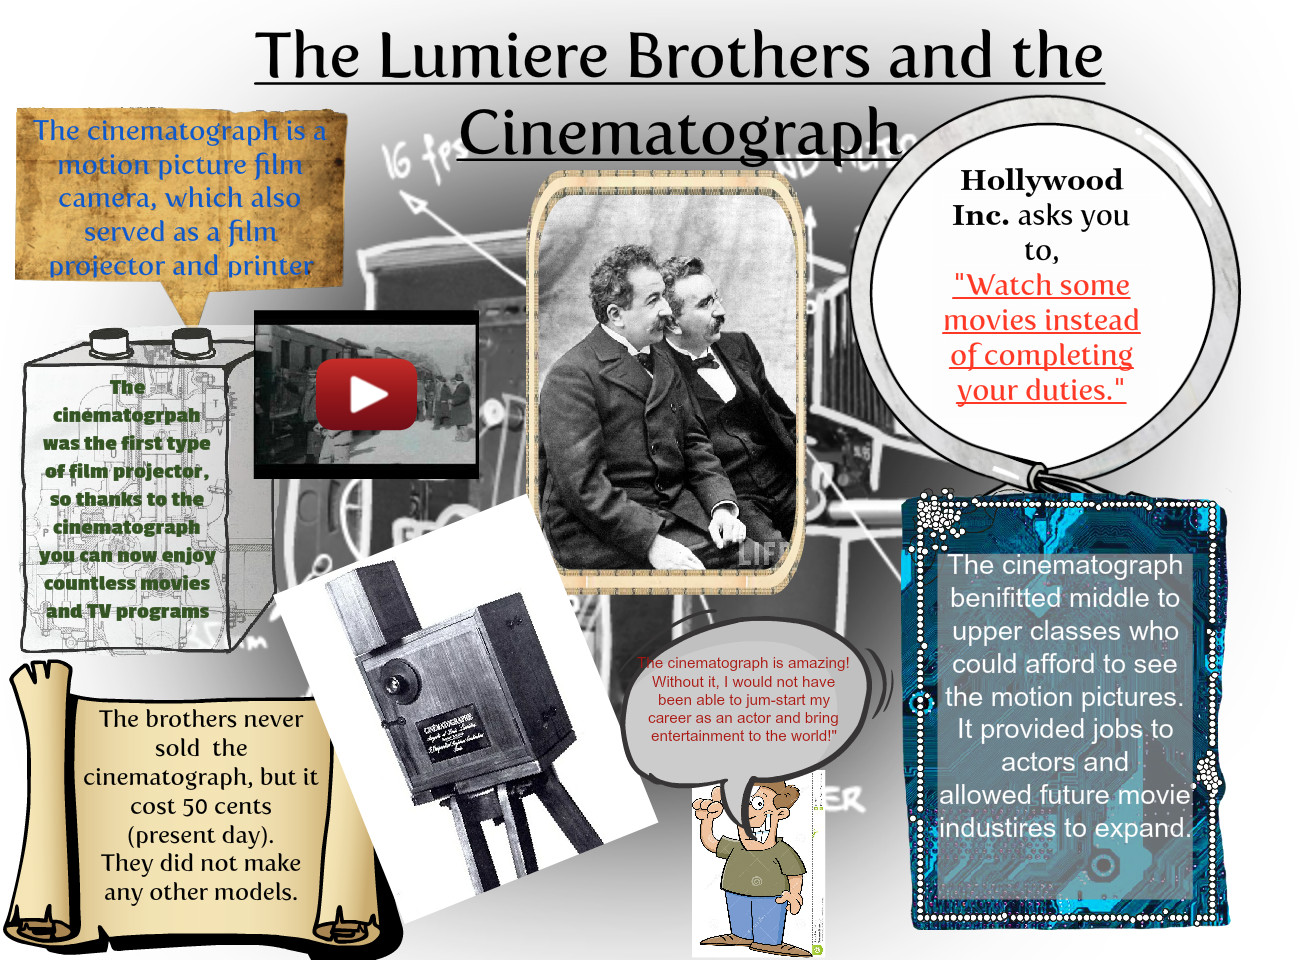 The Lumiere Brothers and the Cinematograph